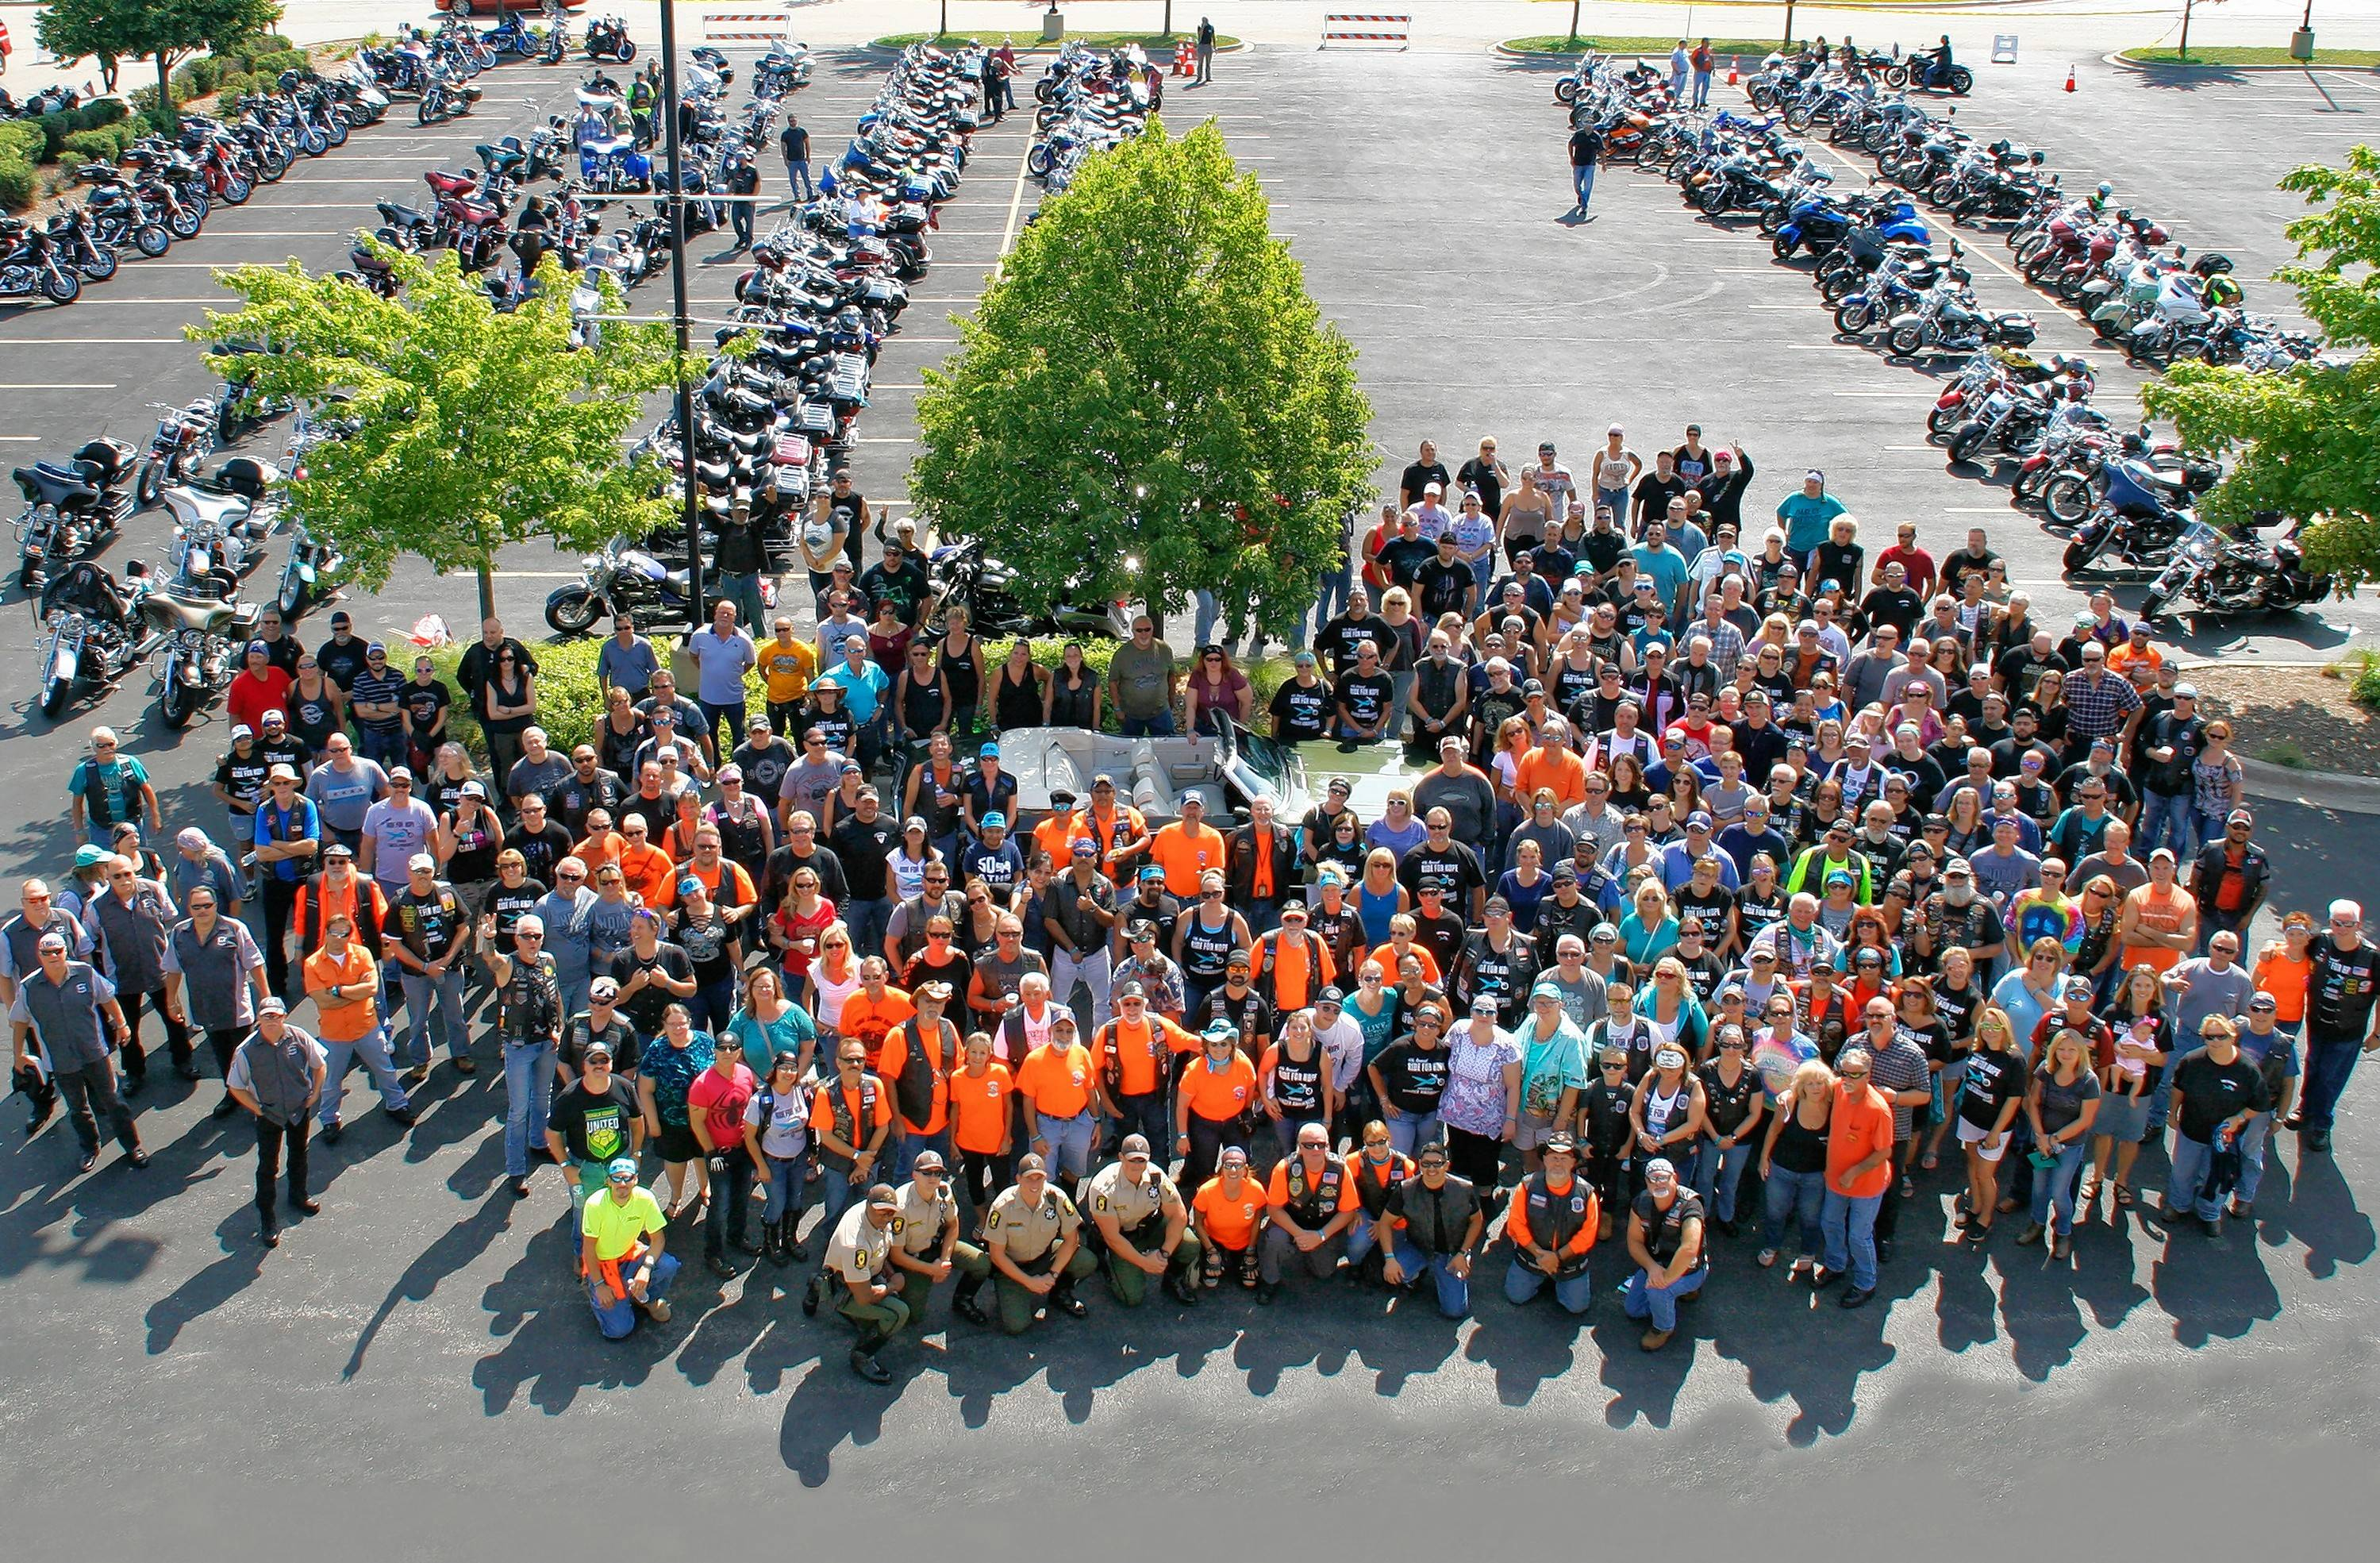 Two hundred and seventy Ride for Hope bikers gather for a group photo July 29 at the Fox River Harley-Davidson dealership in St. Charles before the ride.